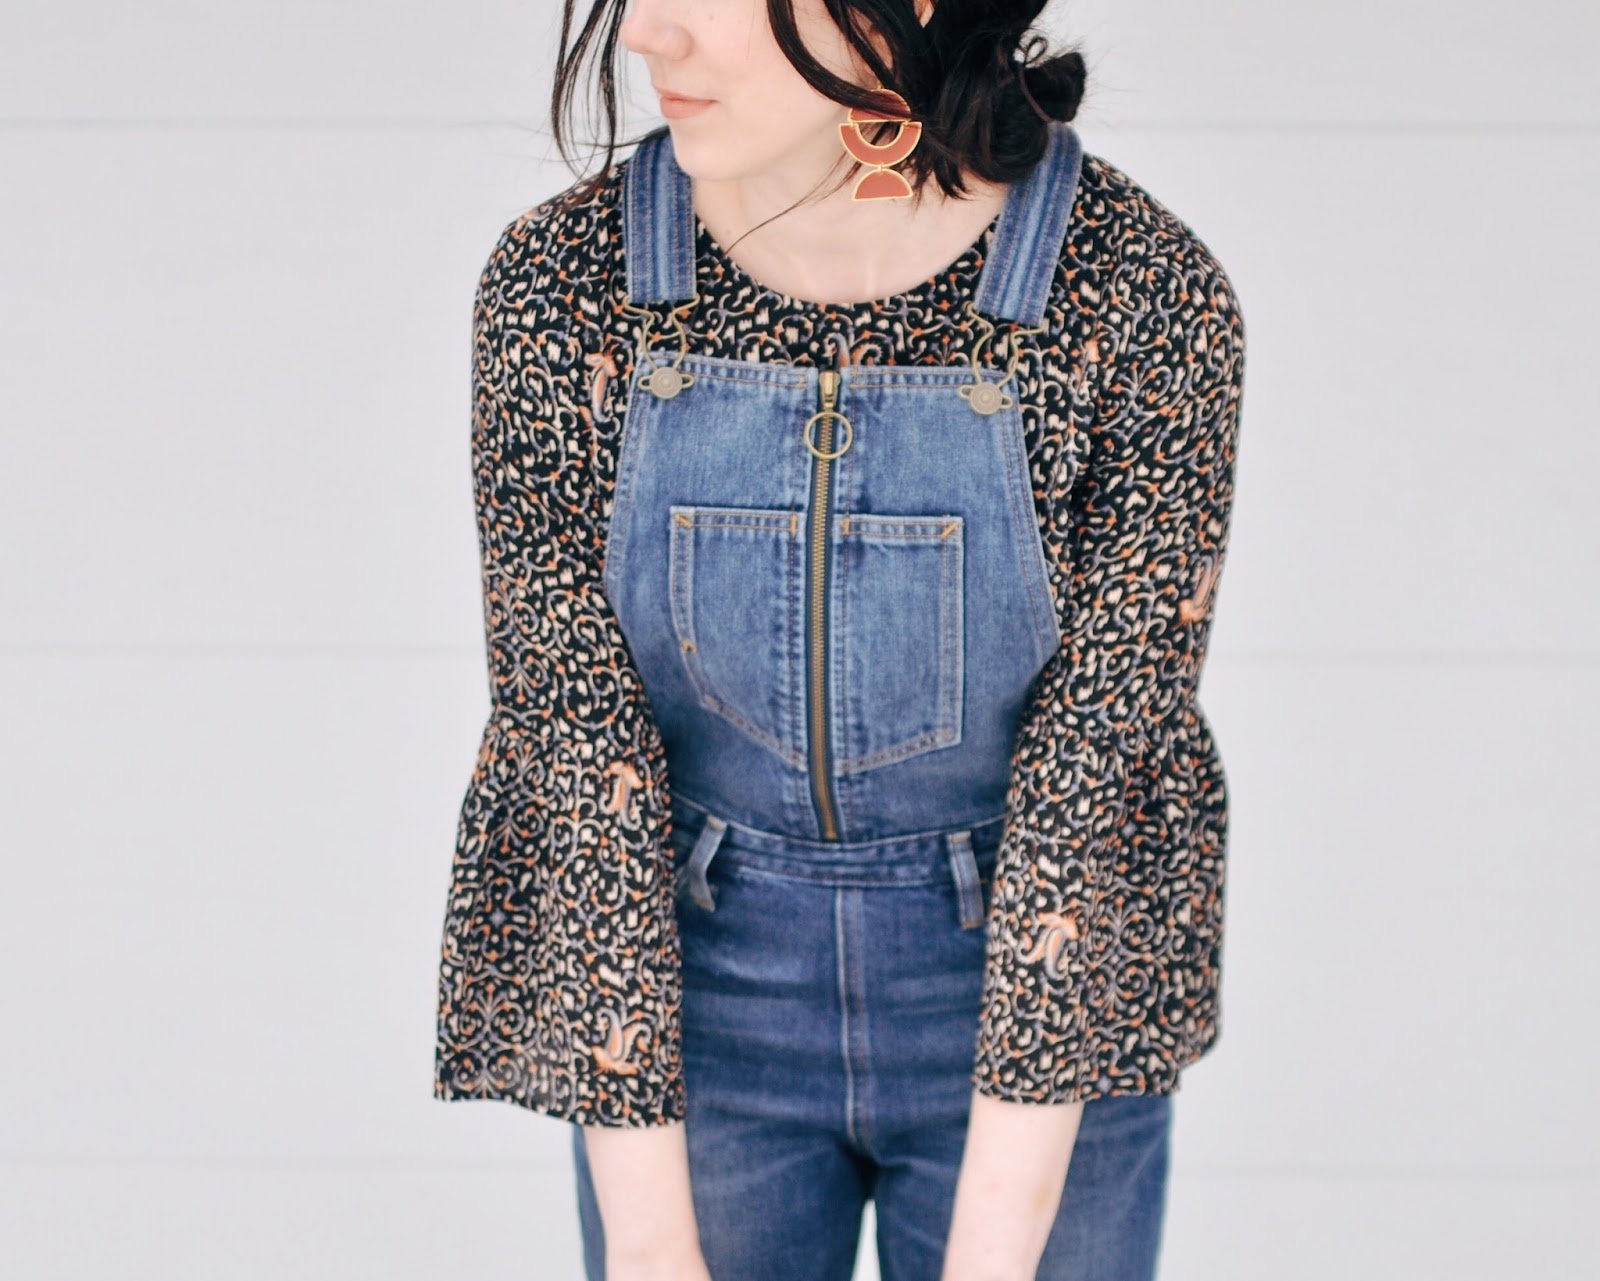 alaska fashion outfits madewell fiesta levis overalls chanel flats